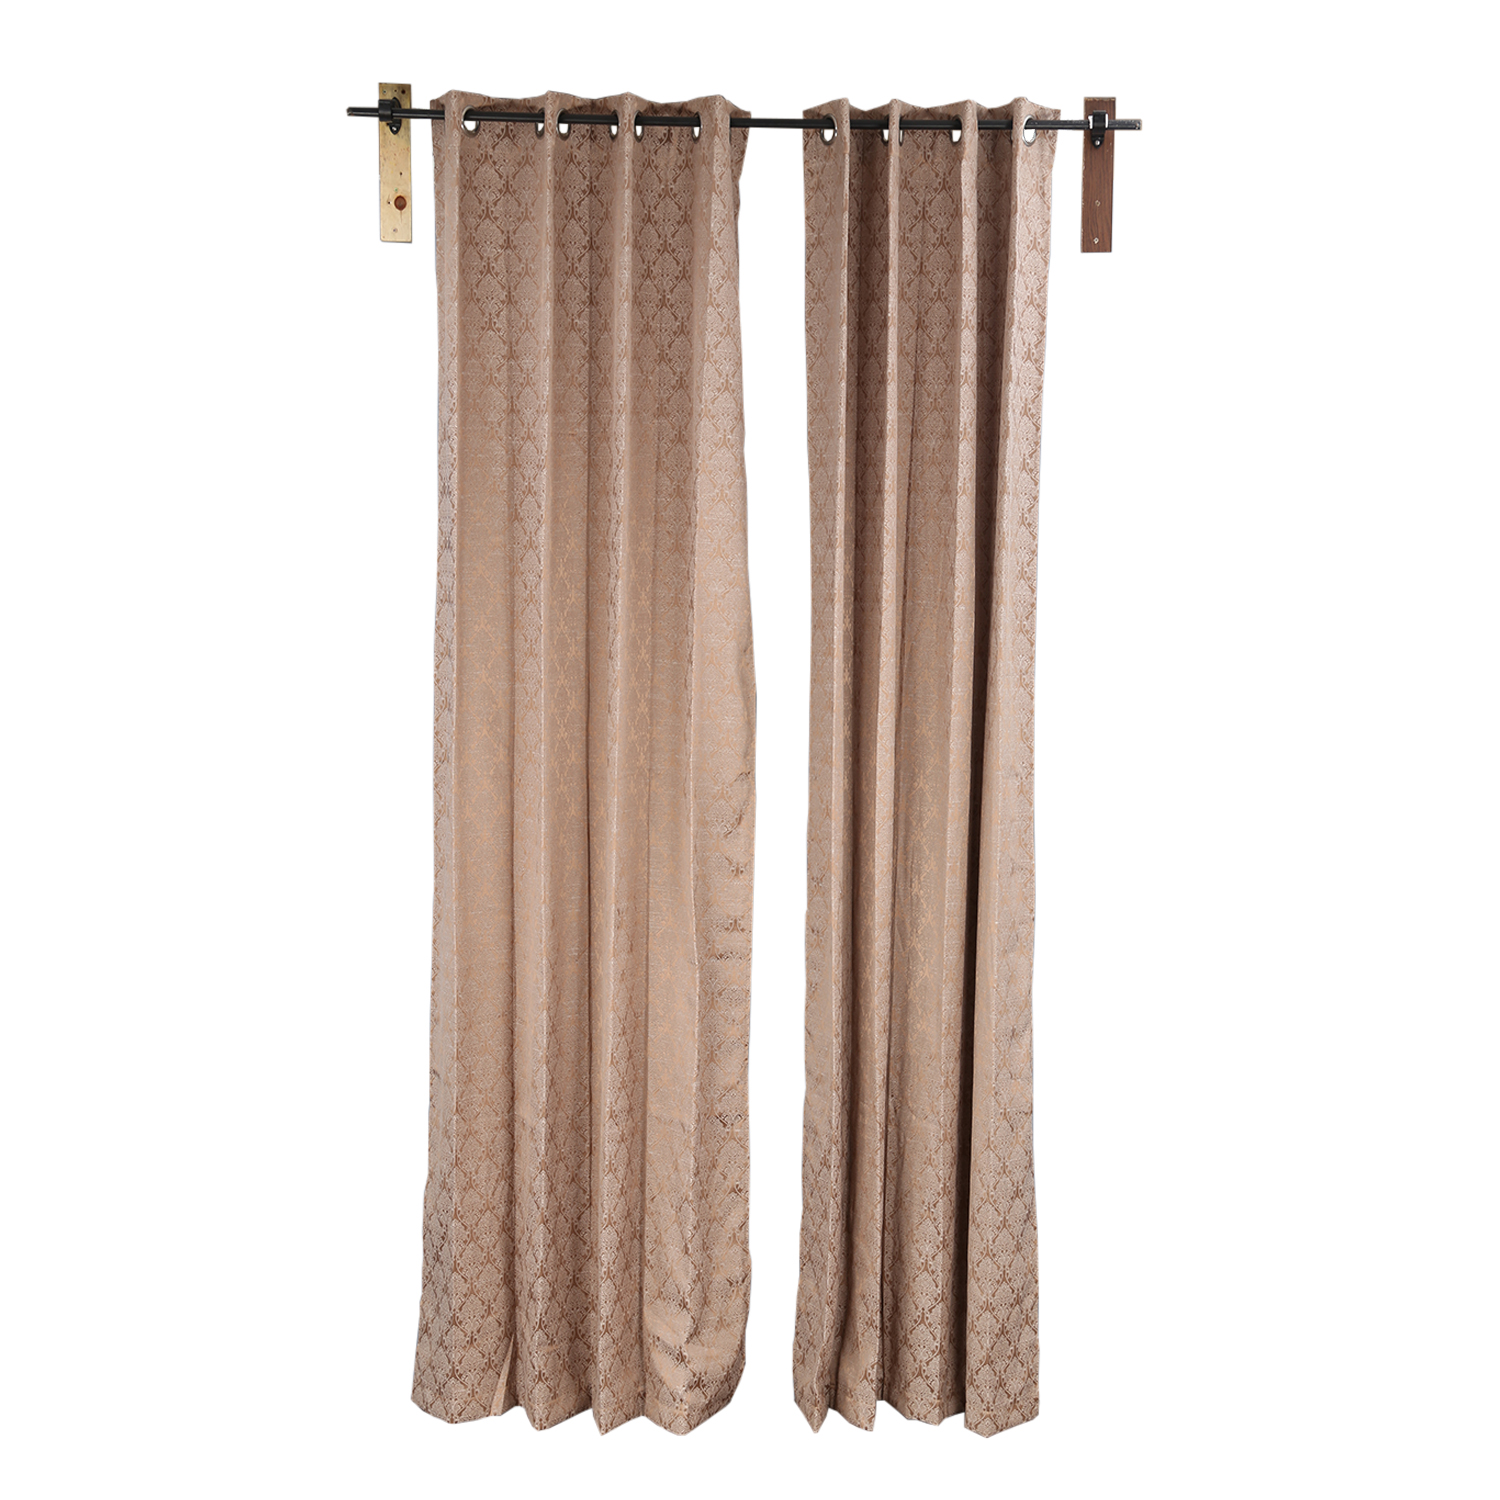 Aspen Extra Large Curtain Polyester Door Curtains in Brown Colour by Living Essence